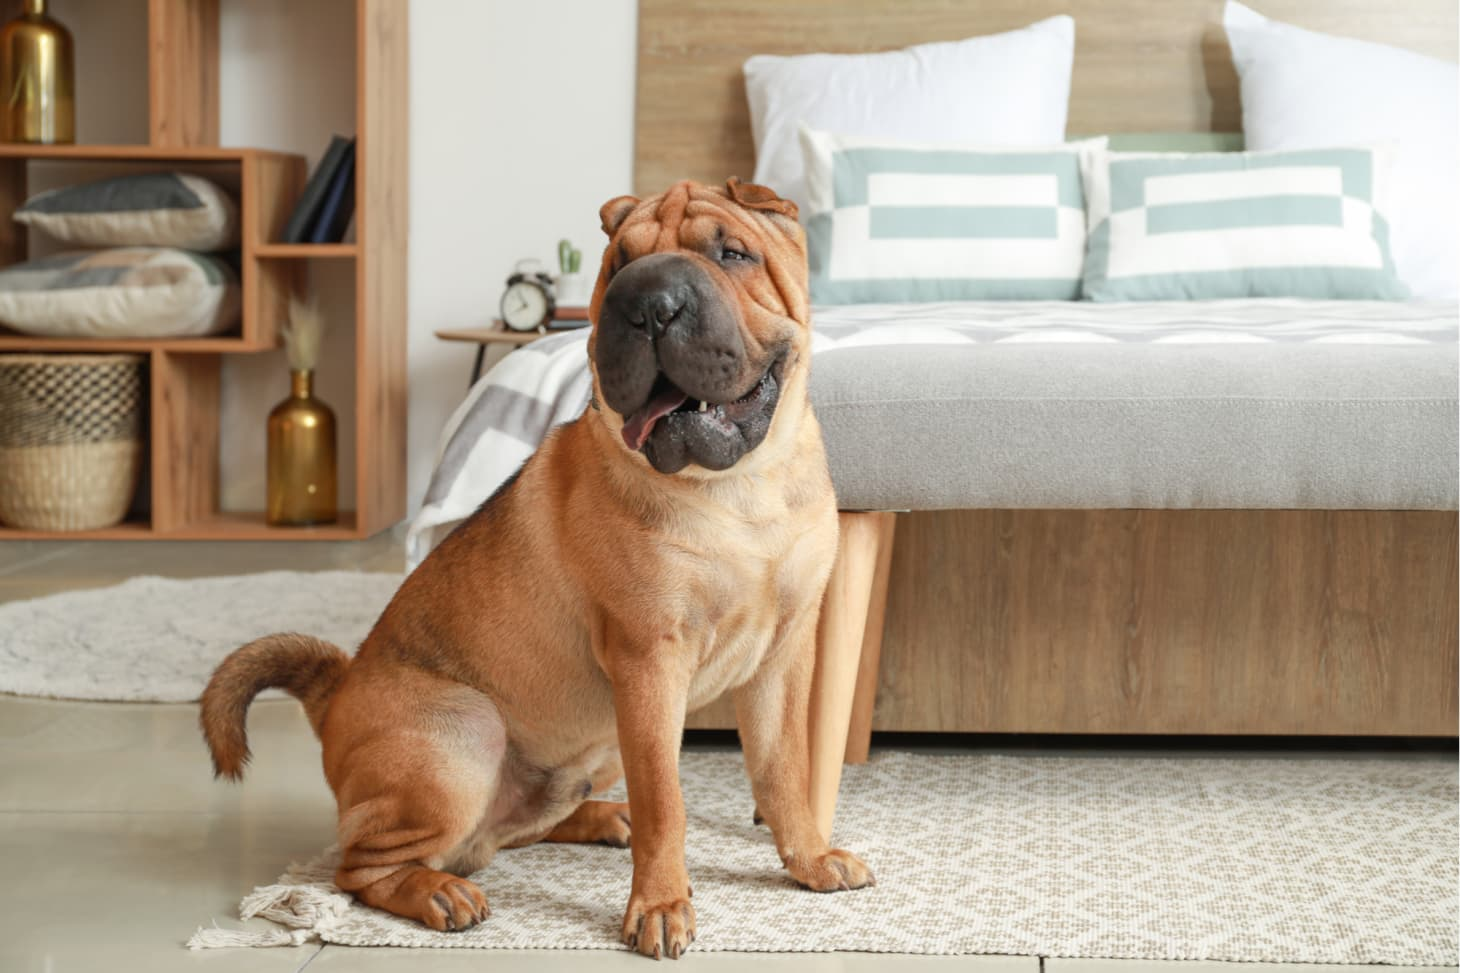 21 Best Apartment Dogs - Good Dog Breeds for Small ...